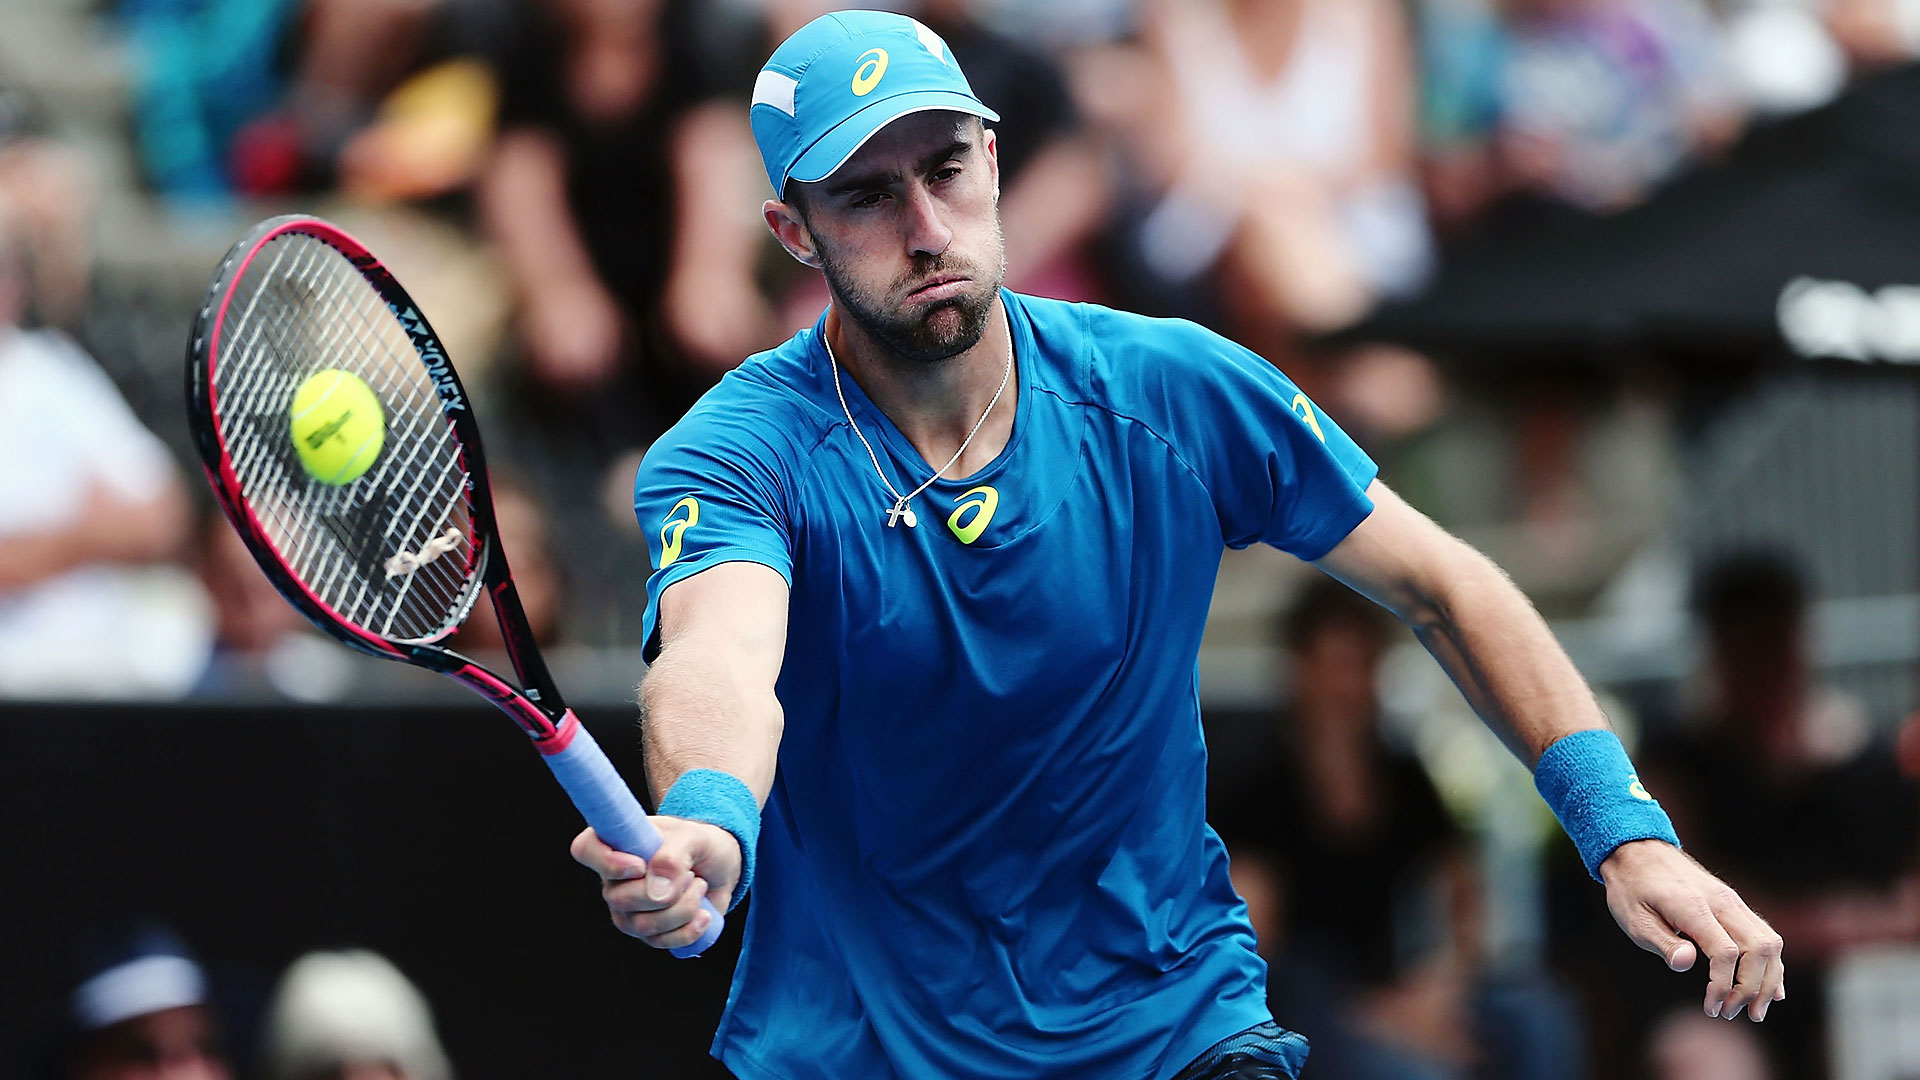 Steve Johnson cruises past Stephane Robert on opening day at the ASB Classic.